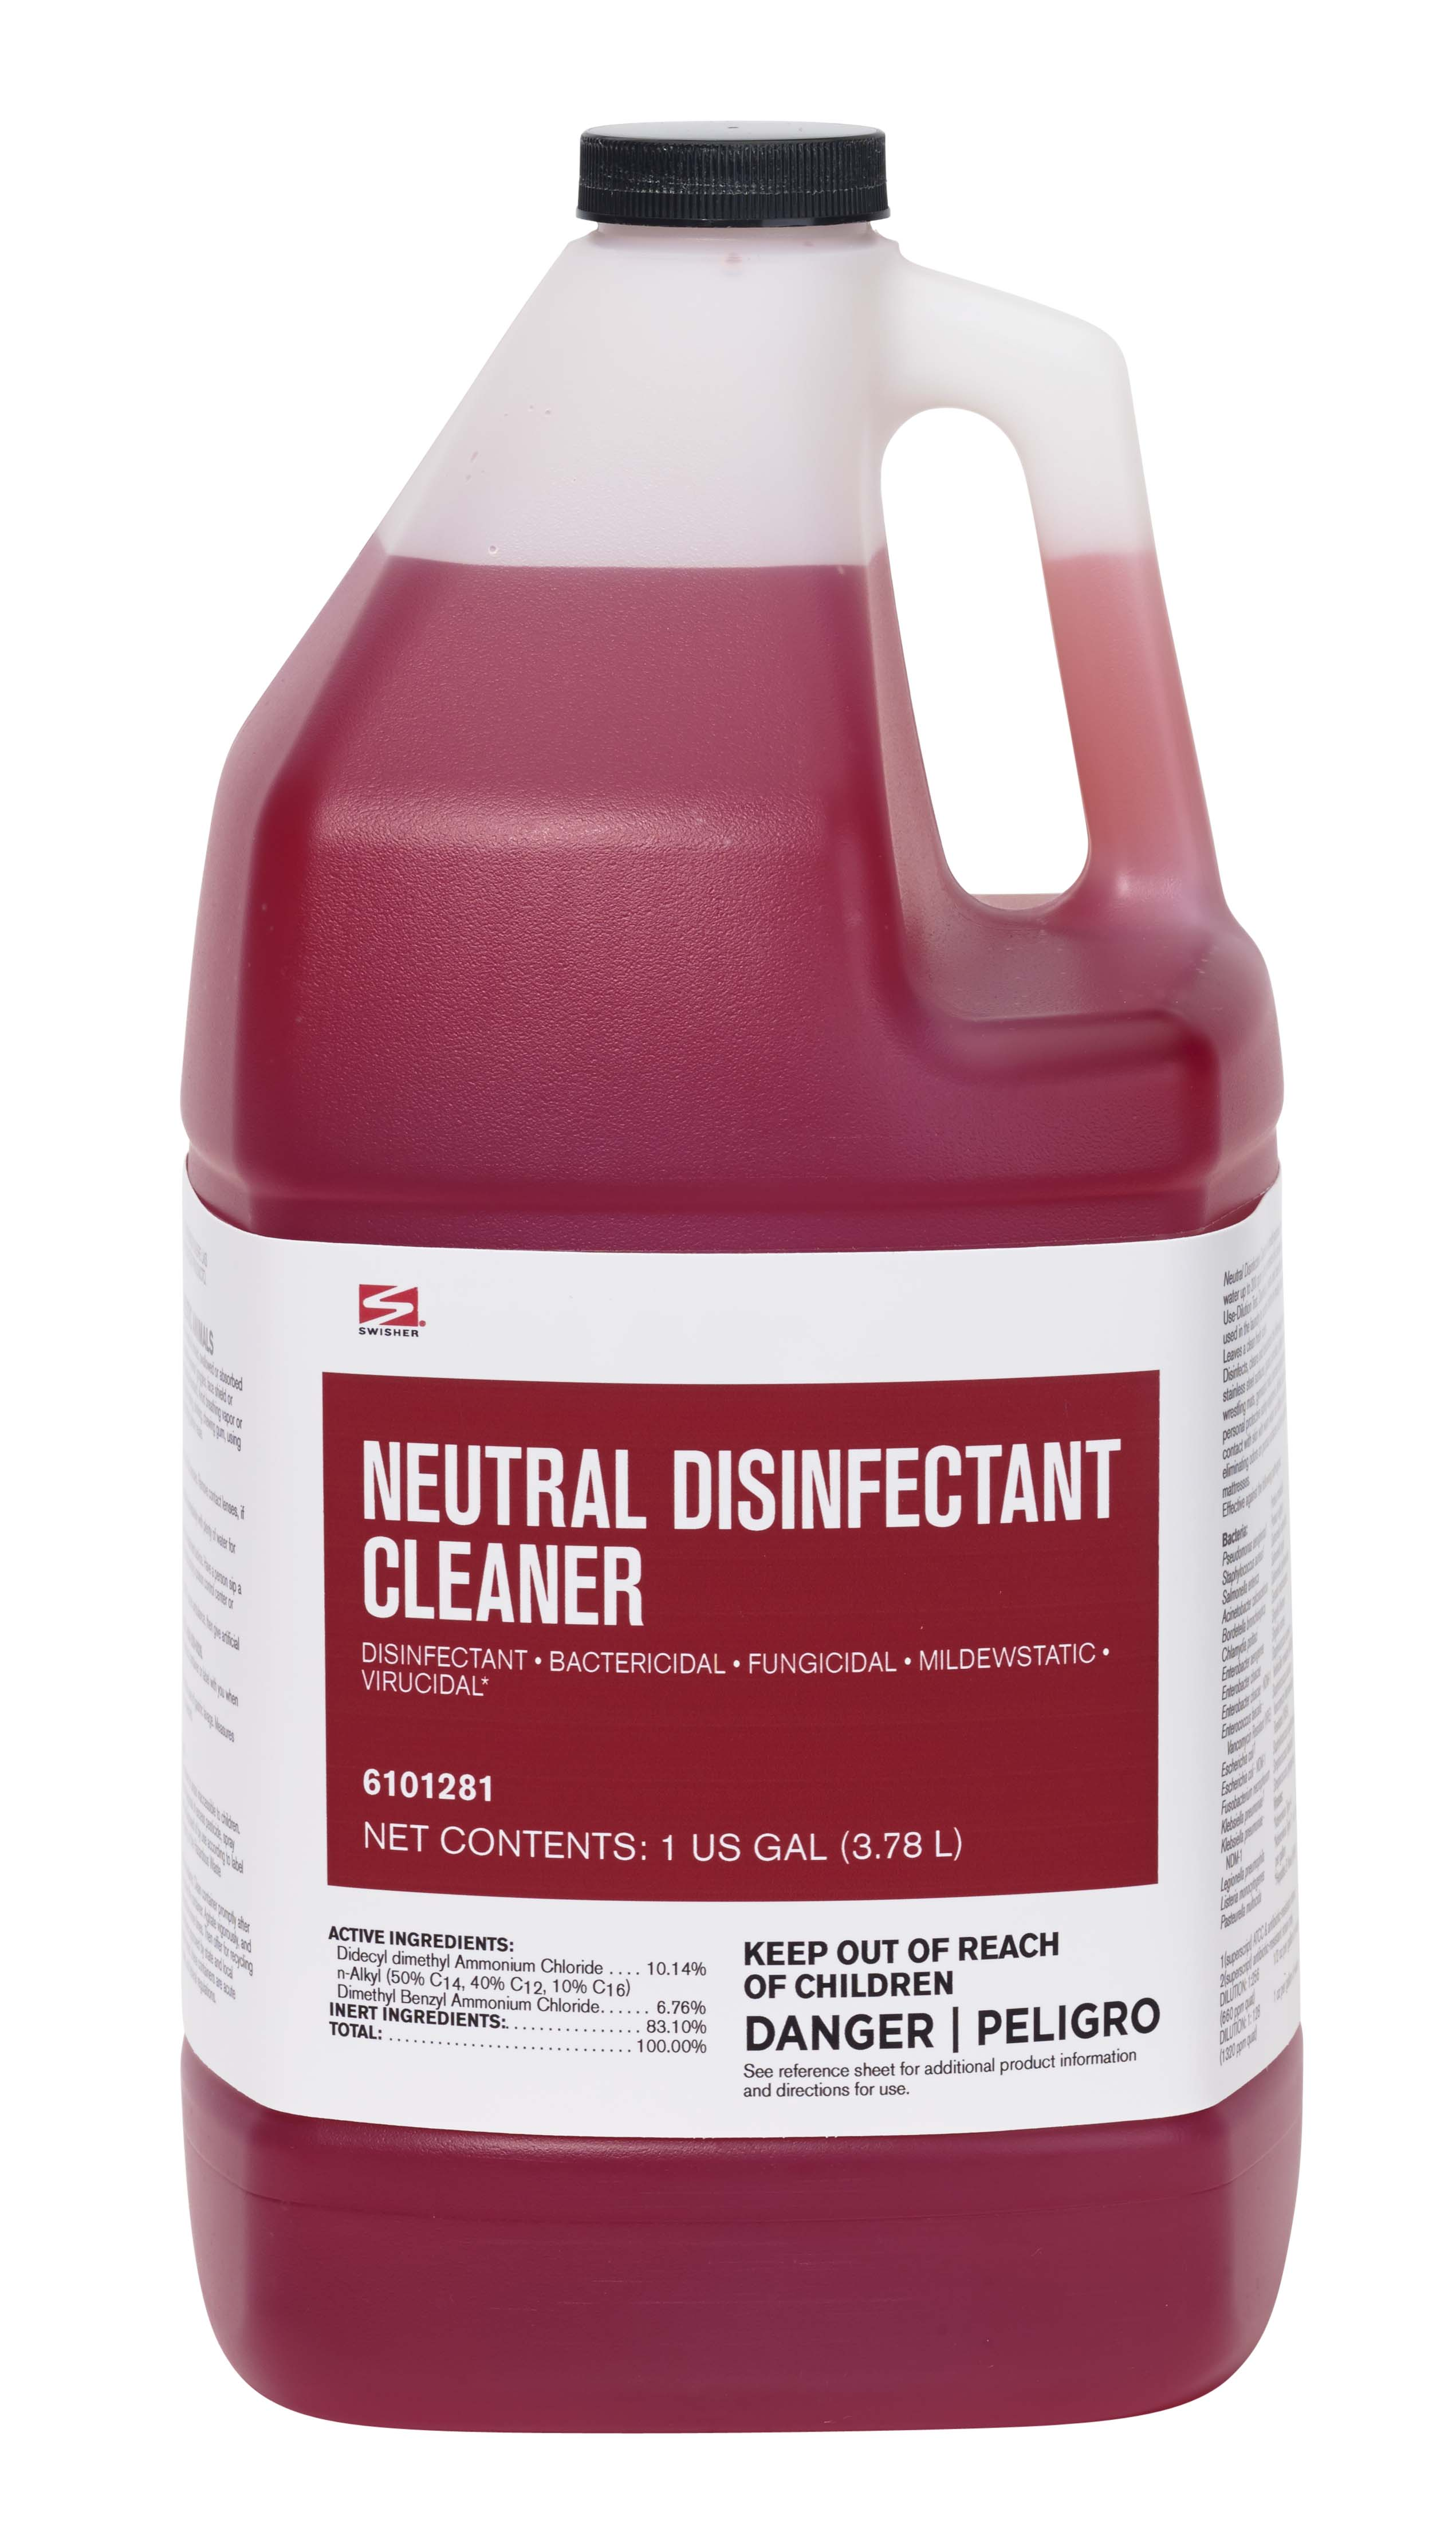 Swisher Neutral Disinfectant Cleaner